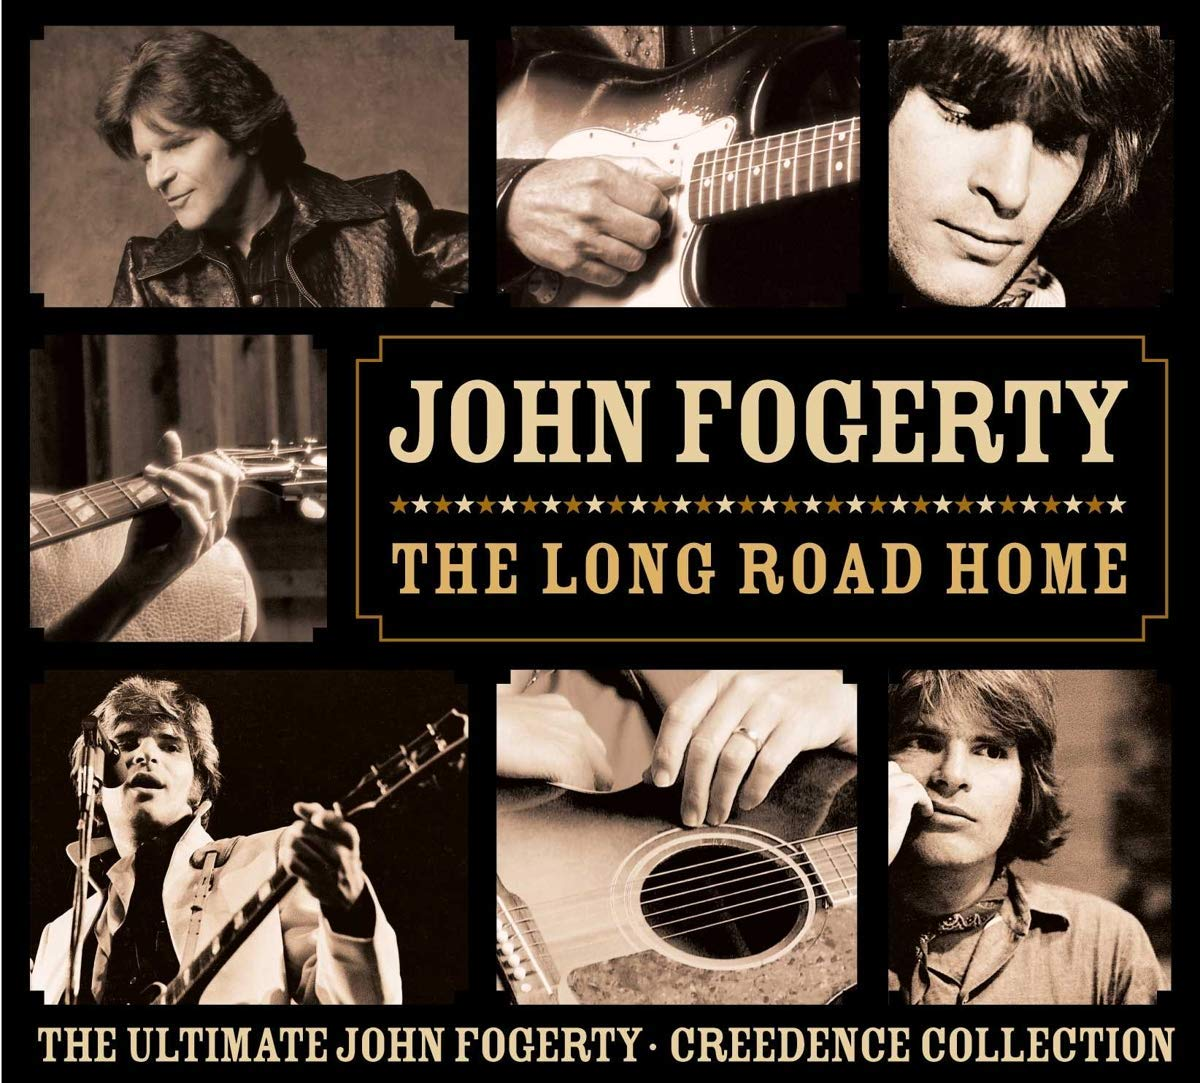 The Long Road Home: The Ultimate Fogerty / Creedence Collection (CD)